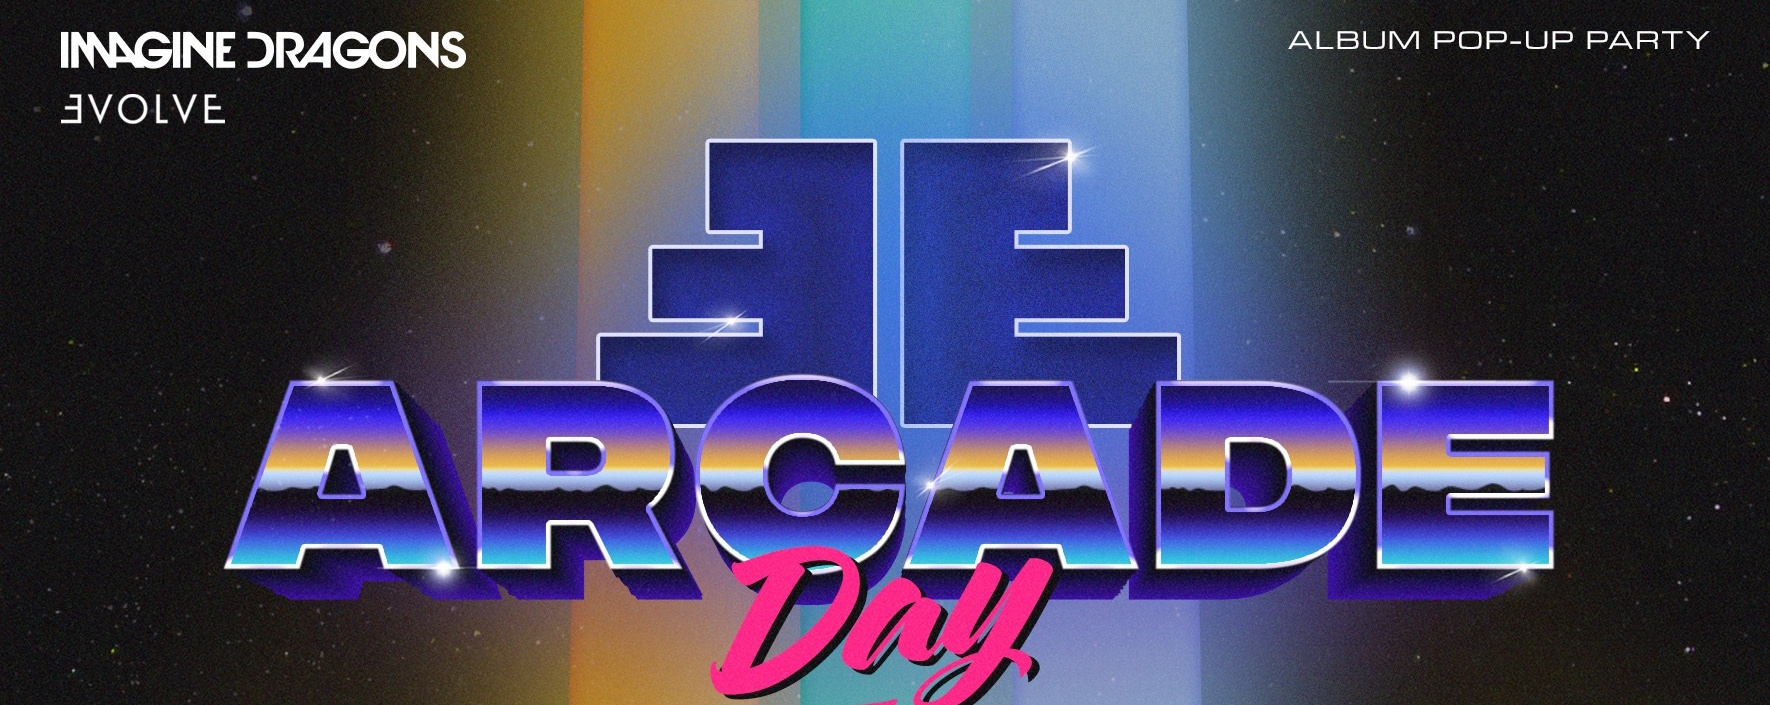 Imagine Dragons Pop-up Party: ƎE Arcade Day